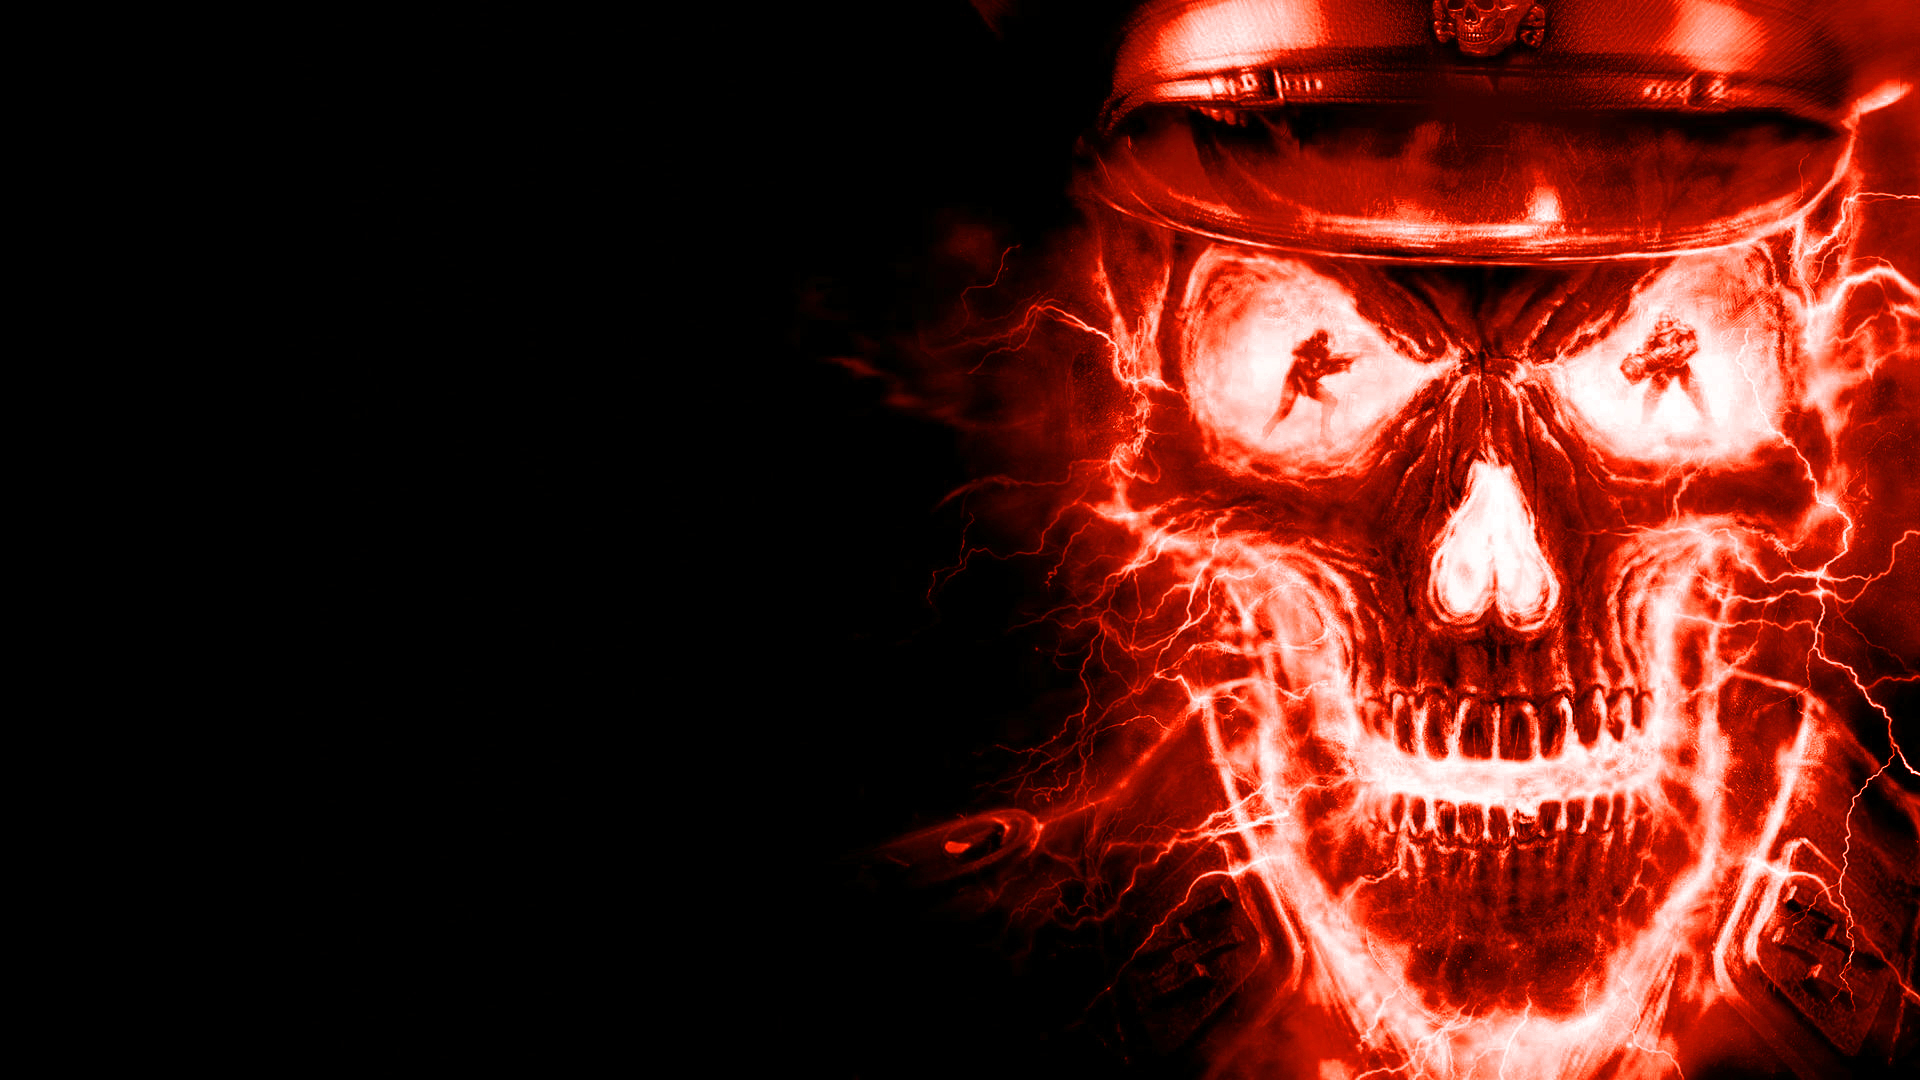 Skull, Background, Texture, Photo, Fire Skull Texture